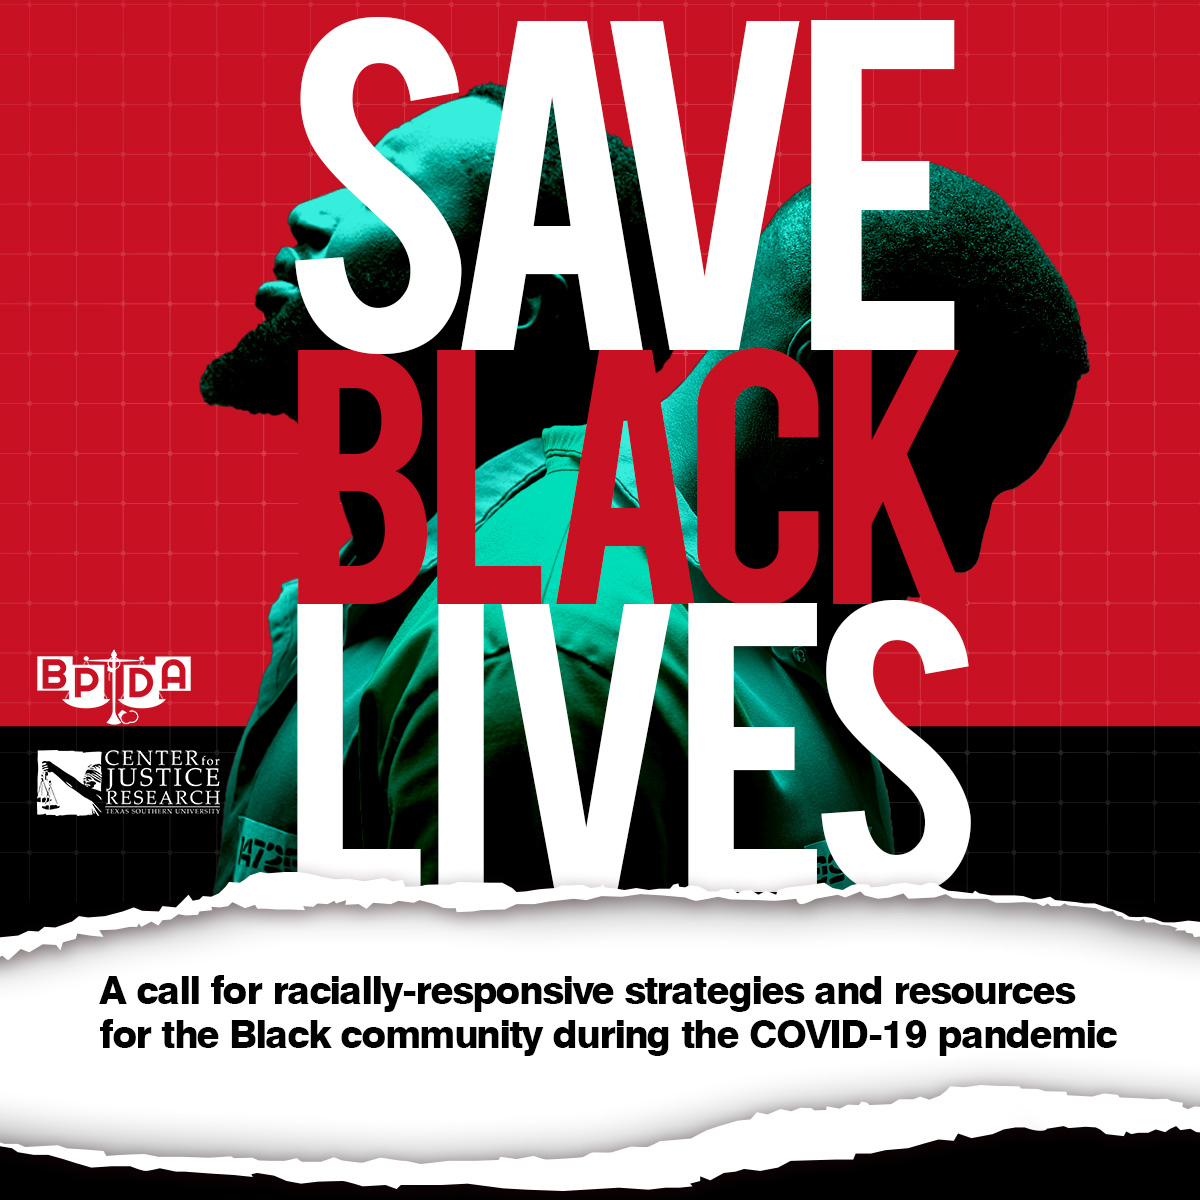 Save Black Lives: Race, COVID-19 and Criminal Justice